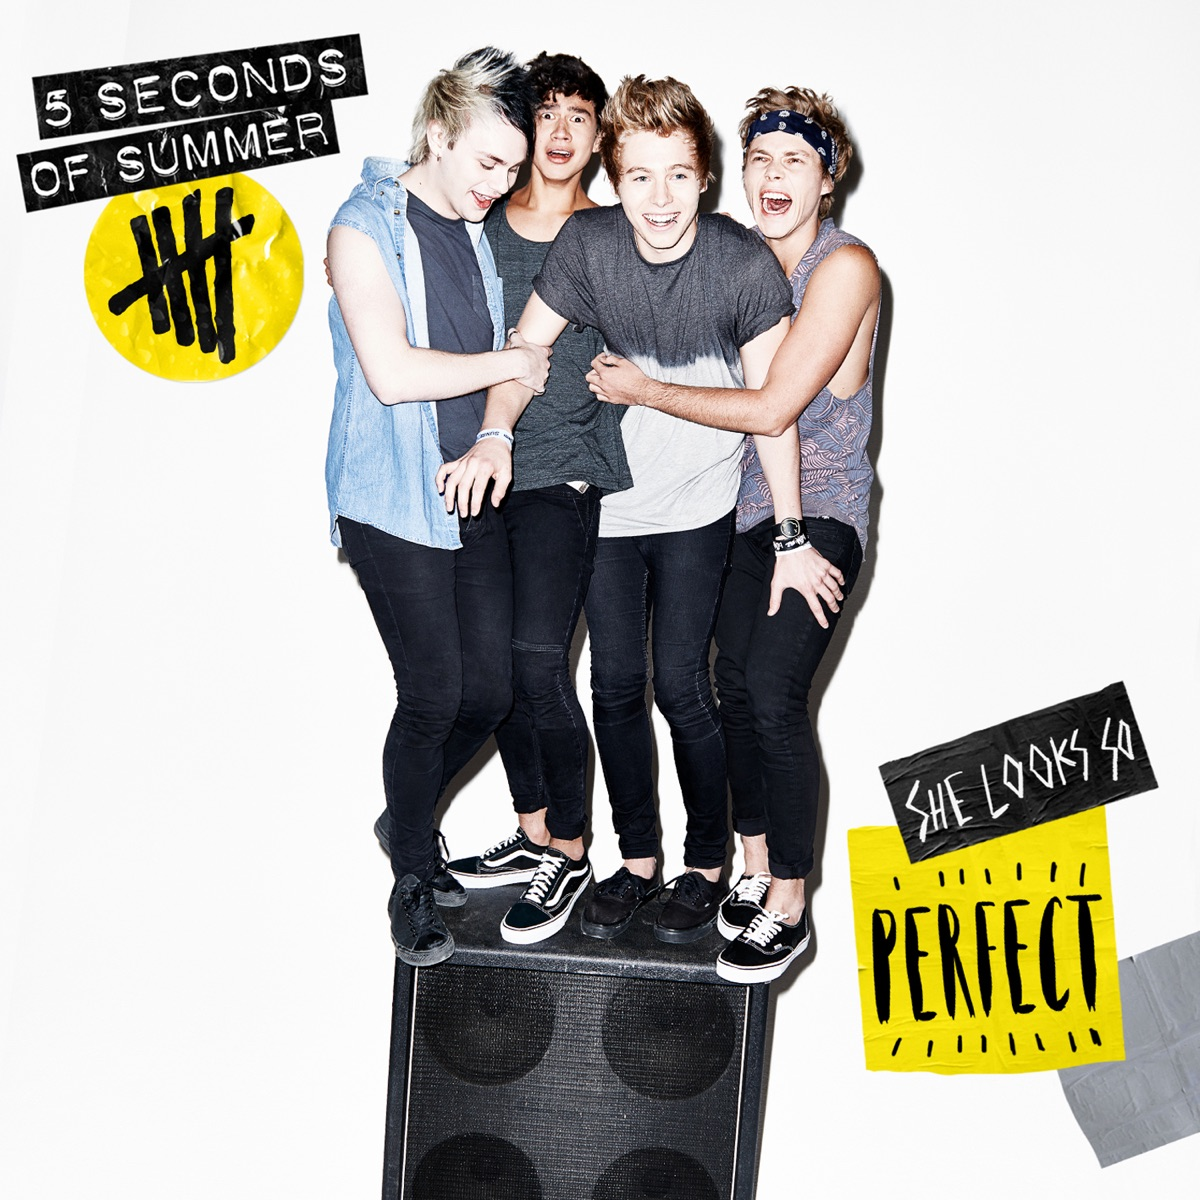 She Looks So Perfect - Single Album Cover by 5 Seconds of Summer